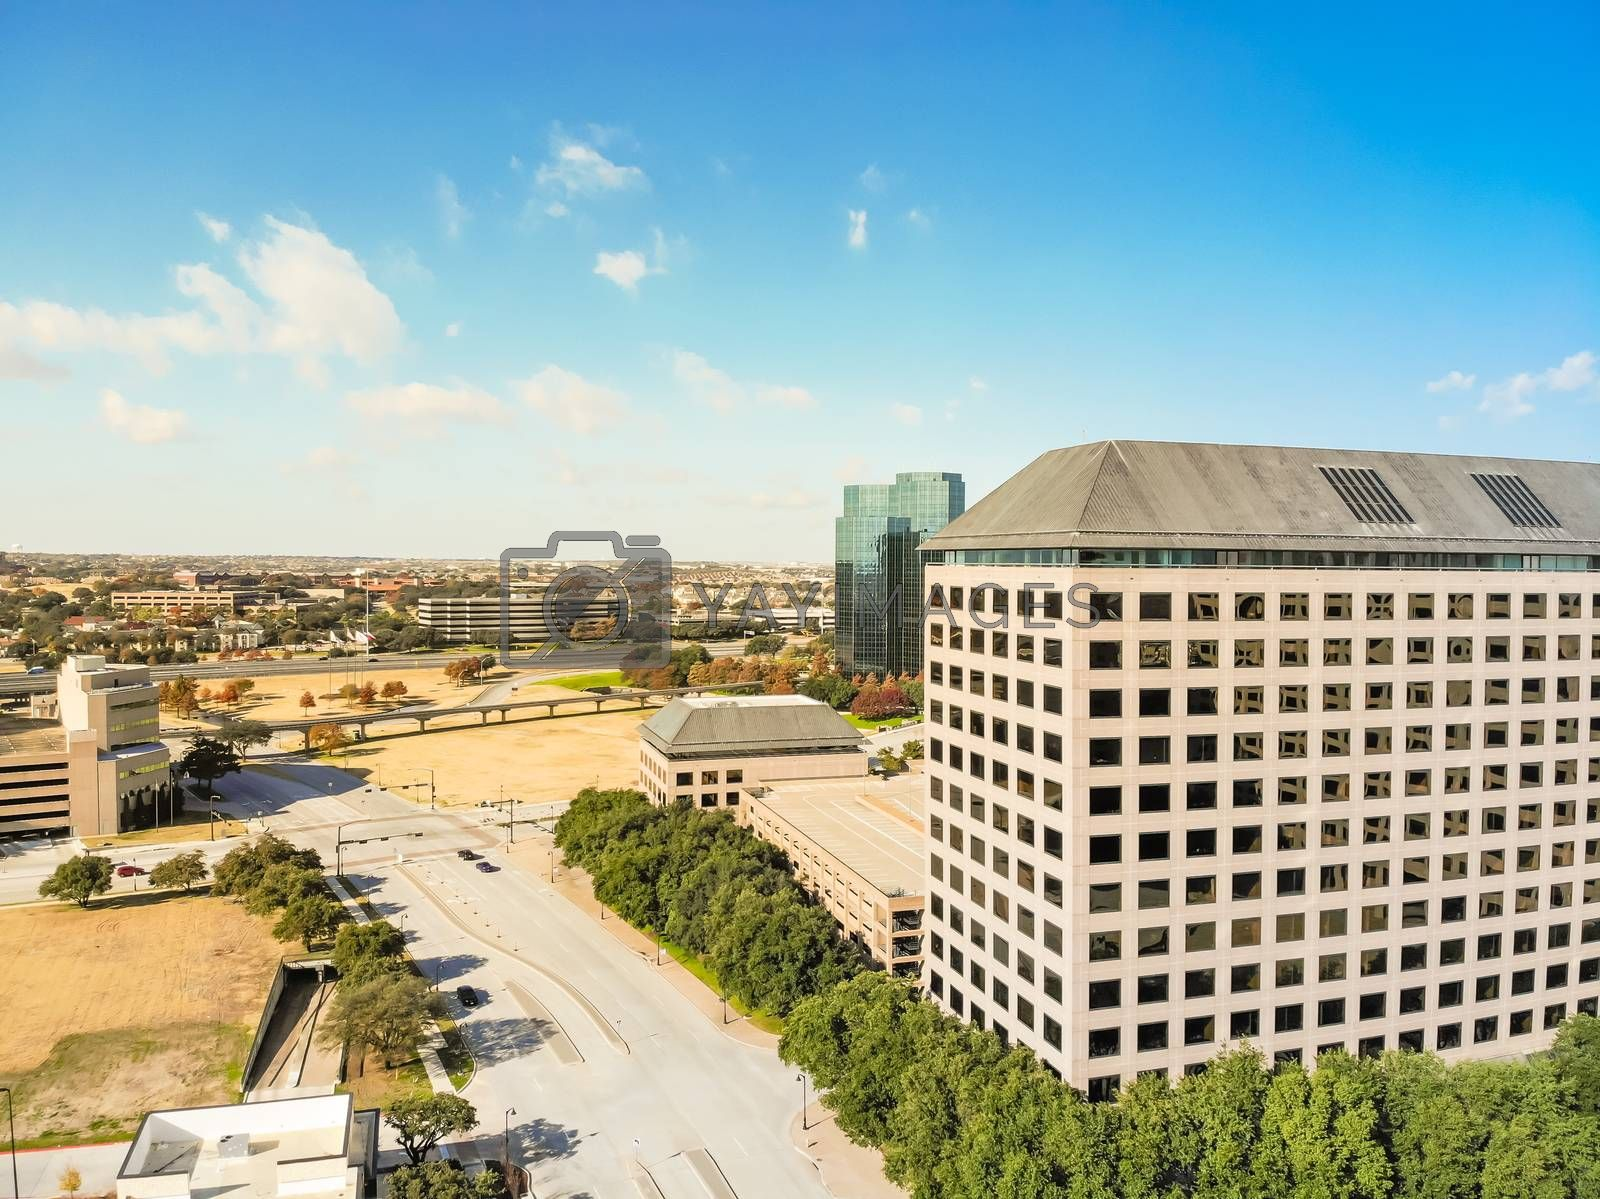 Aerial drone view downtown Las Colinas, an upscale, developed area in the Dallas suburb, Texas, USA